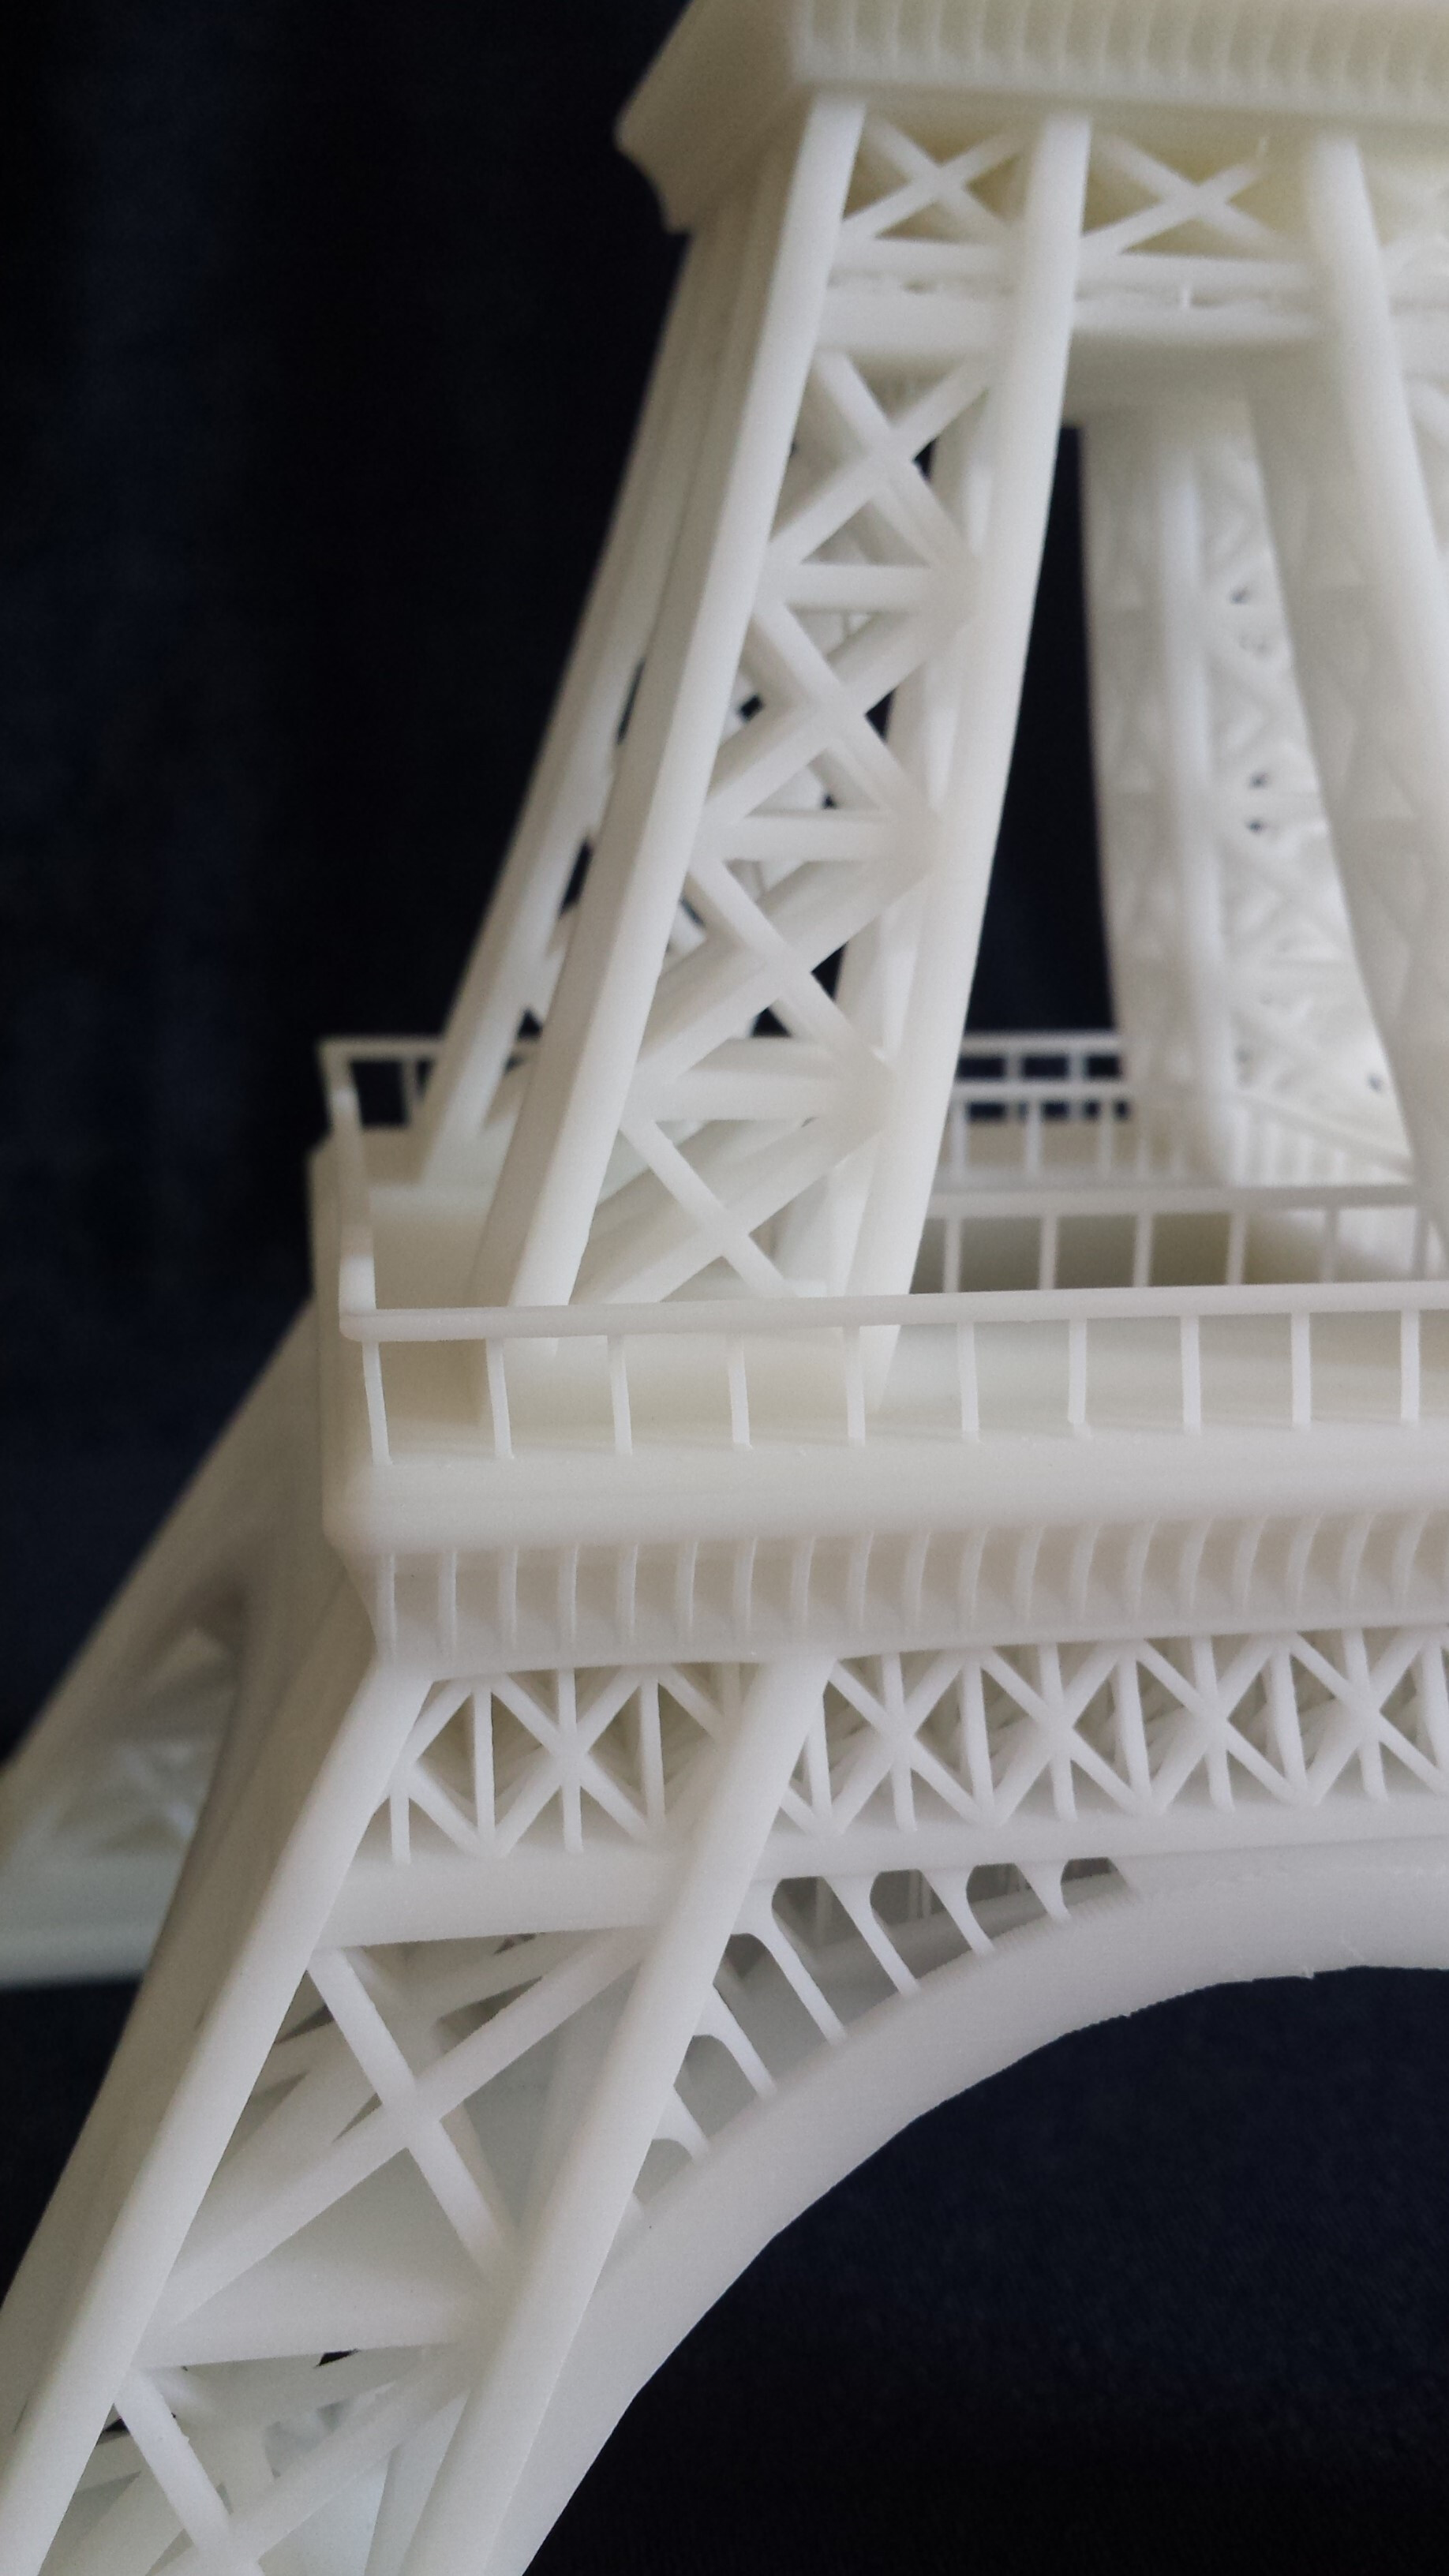 To build a Building Model in 3 days